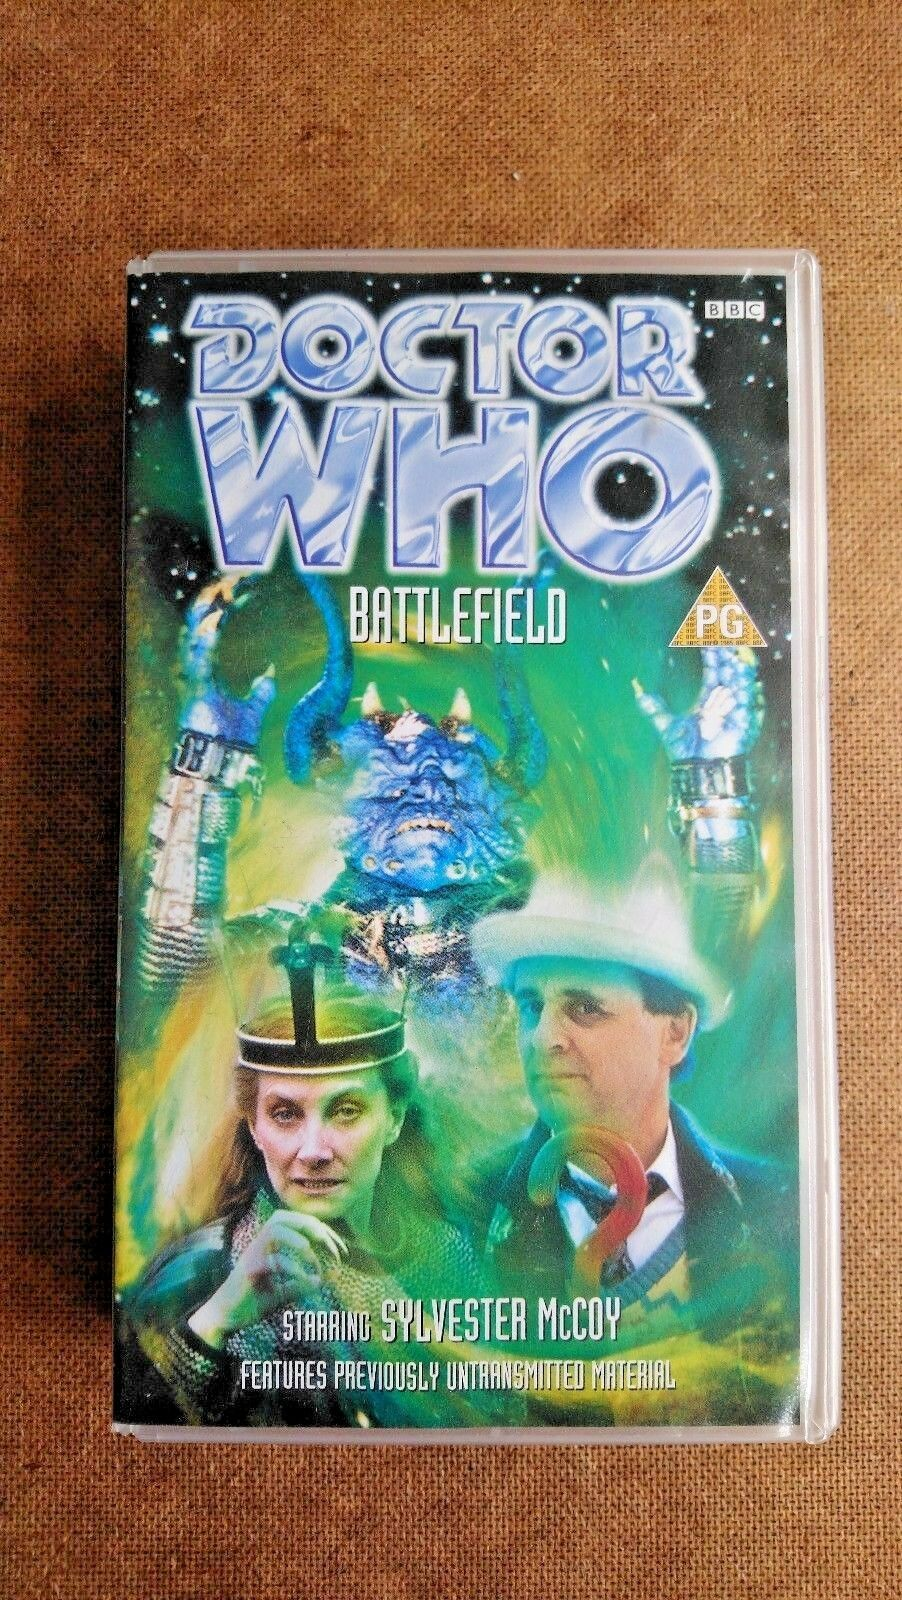 Doctor Who - Battlefield (VHS, 1998) - Sylvester McCoy